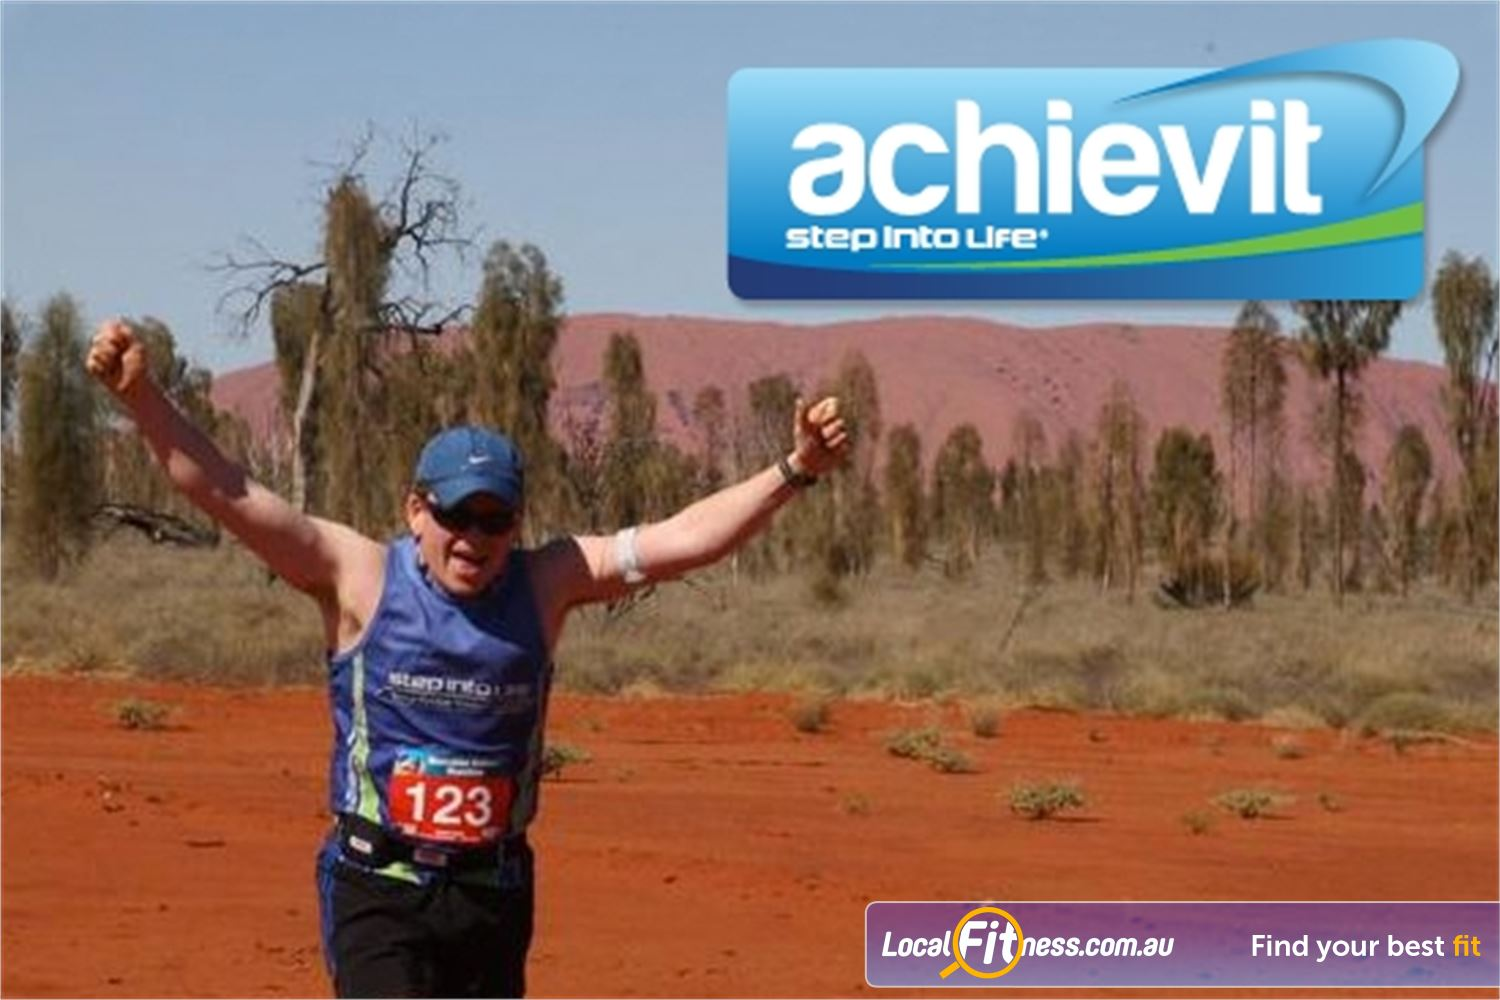 Step into Life Near Yeerongpilly Achievit will help you prepare for your favorite fitness events.